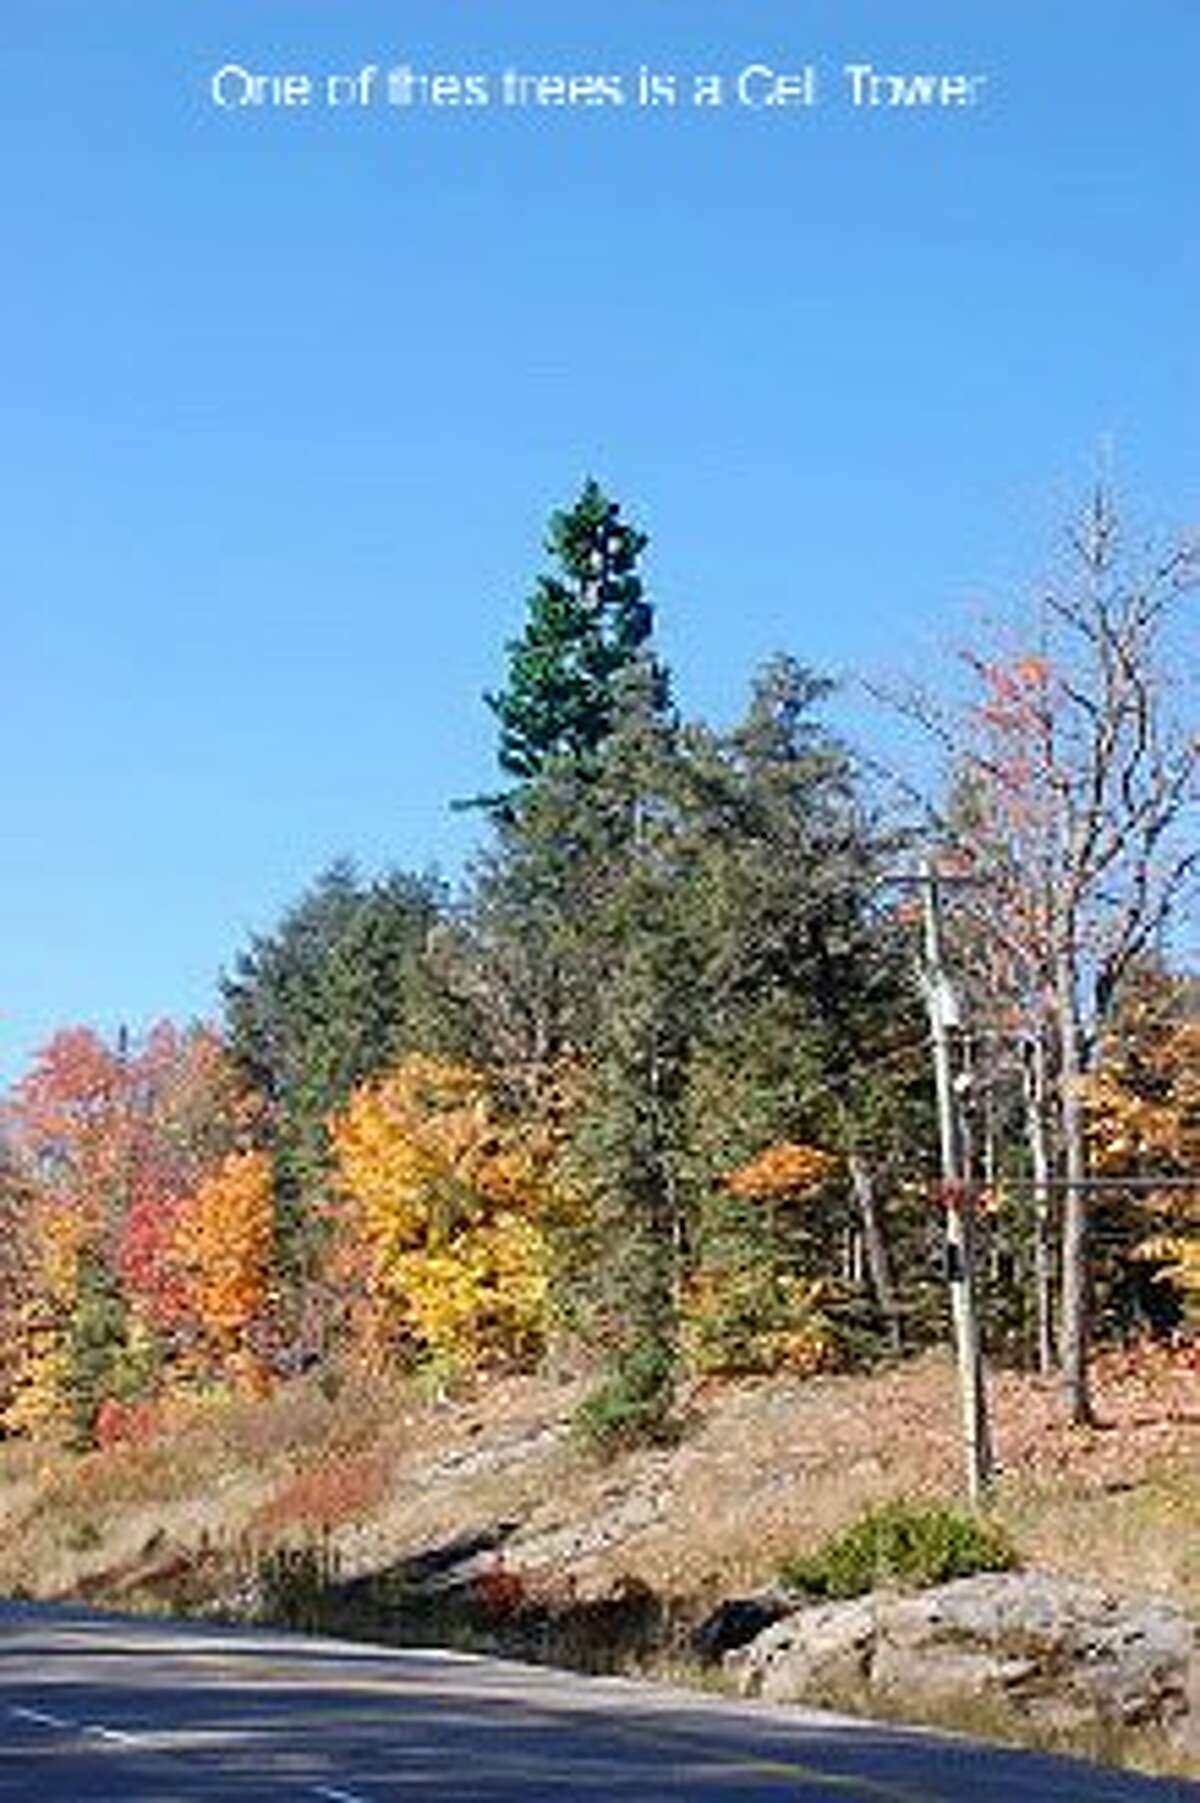 A camouflaged cell phone tower is hard to discern among the trees.